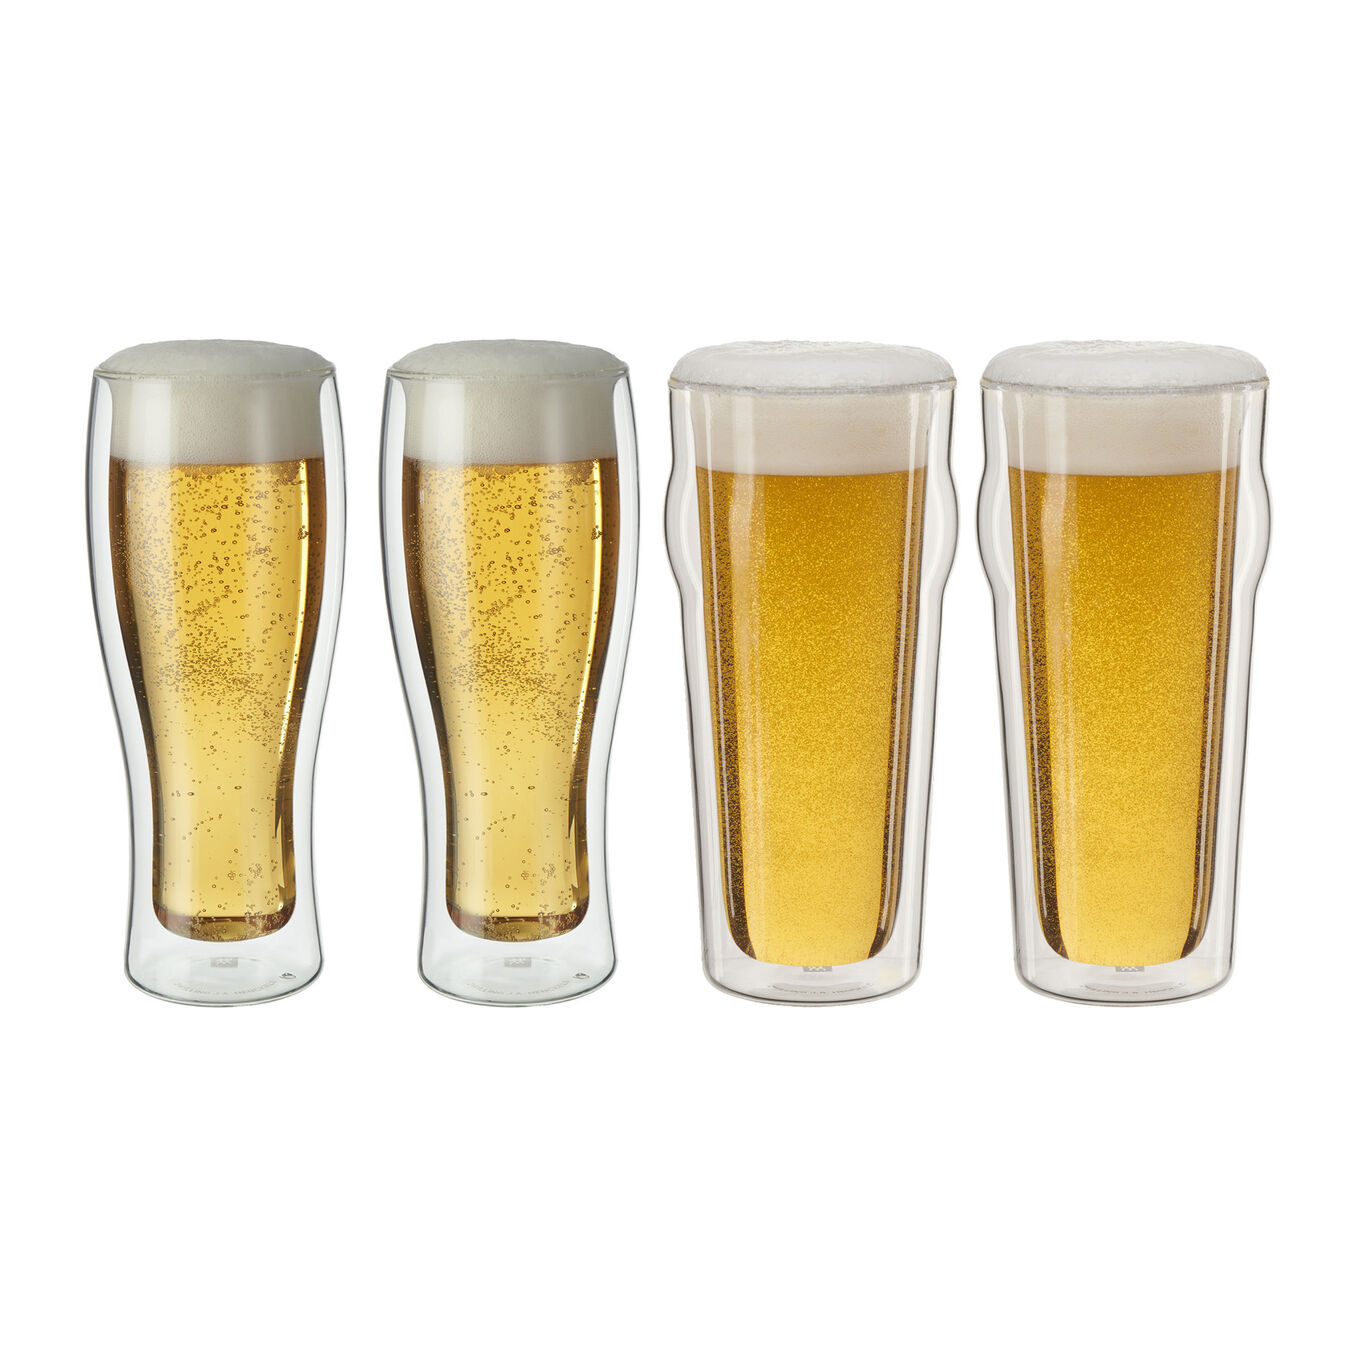 4 Piece Beer glass set,,large 1